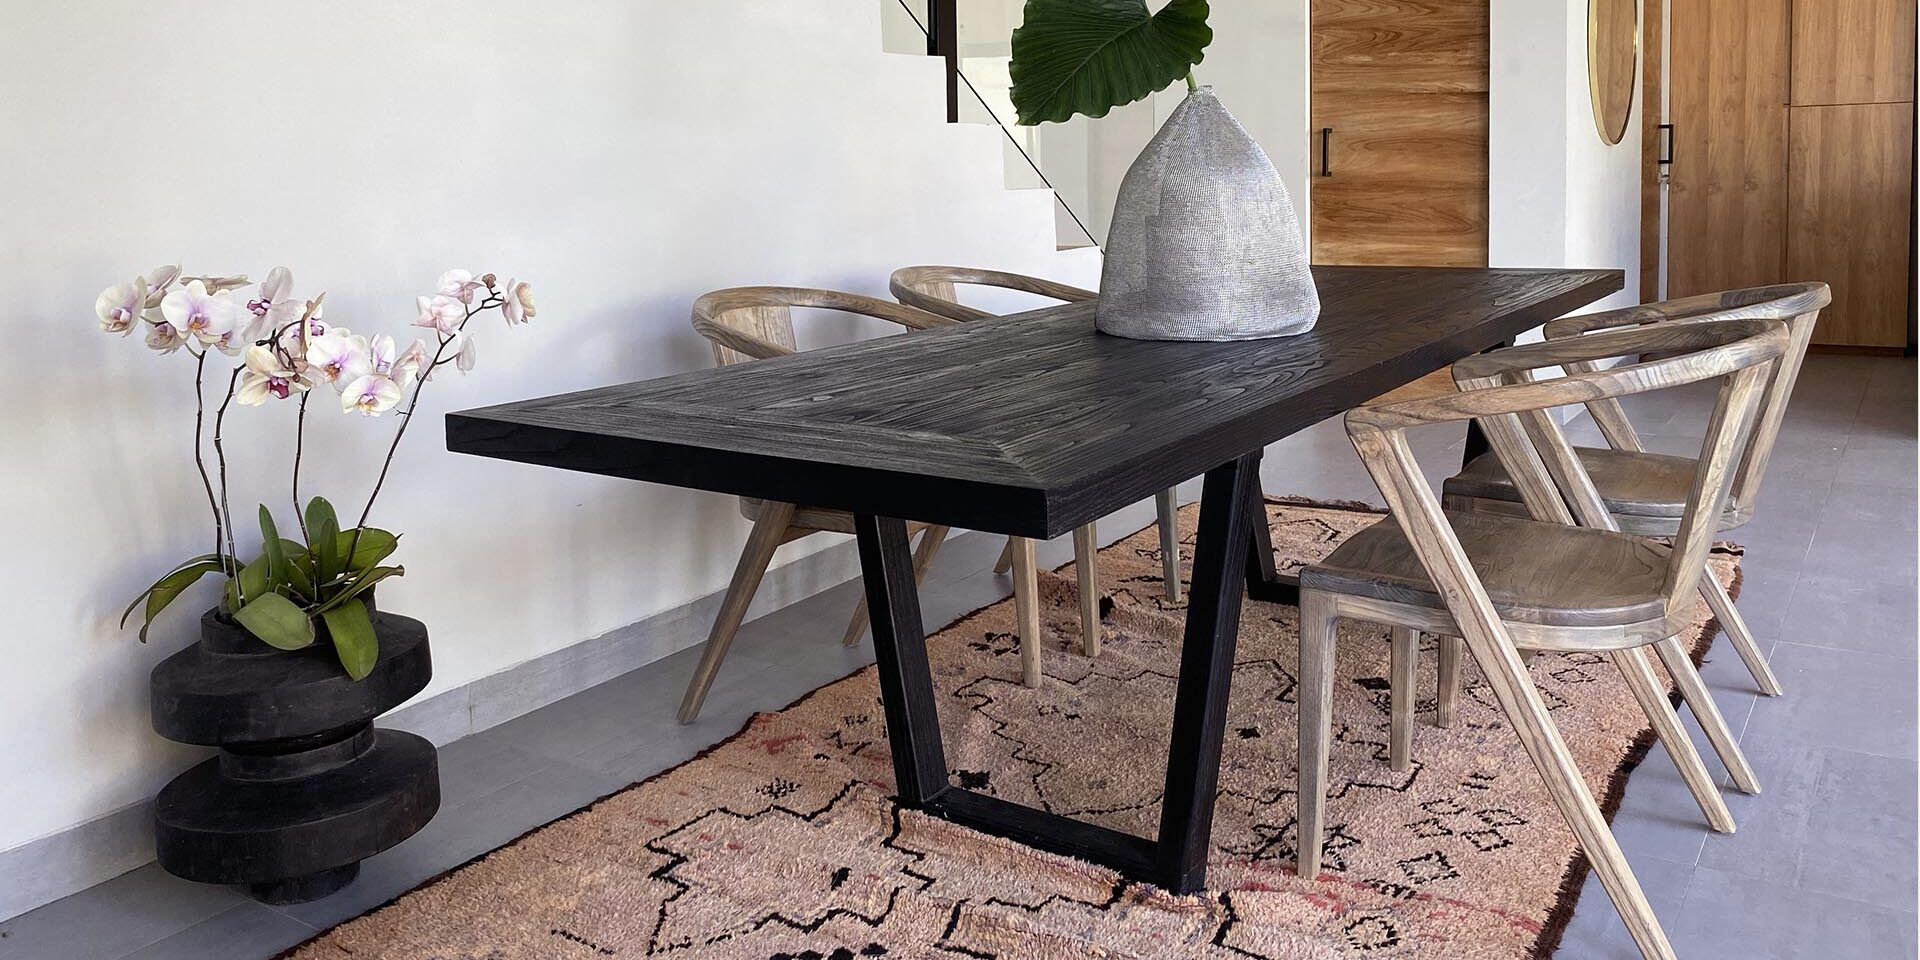 SOUQ Lindy Dining Table